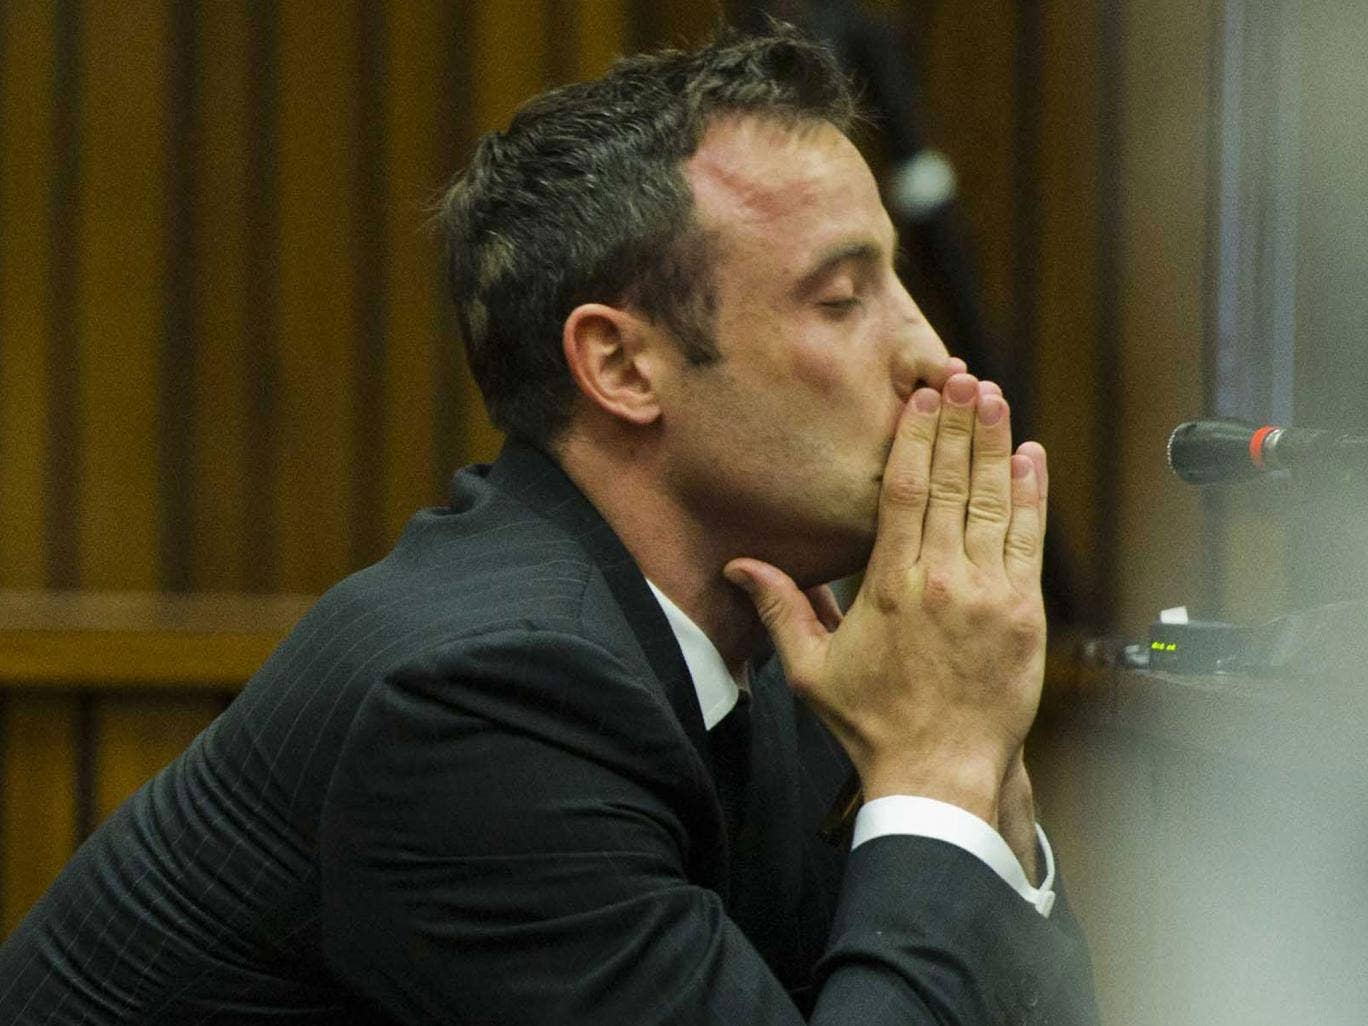 Oscar Pistorius sits in the dock during his murder trial at the North Gauteng High Court in Pretoria